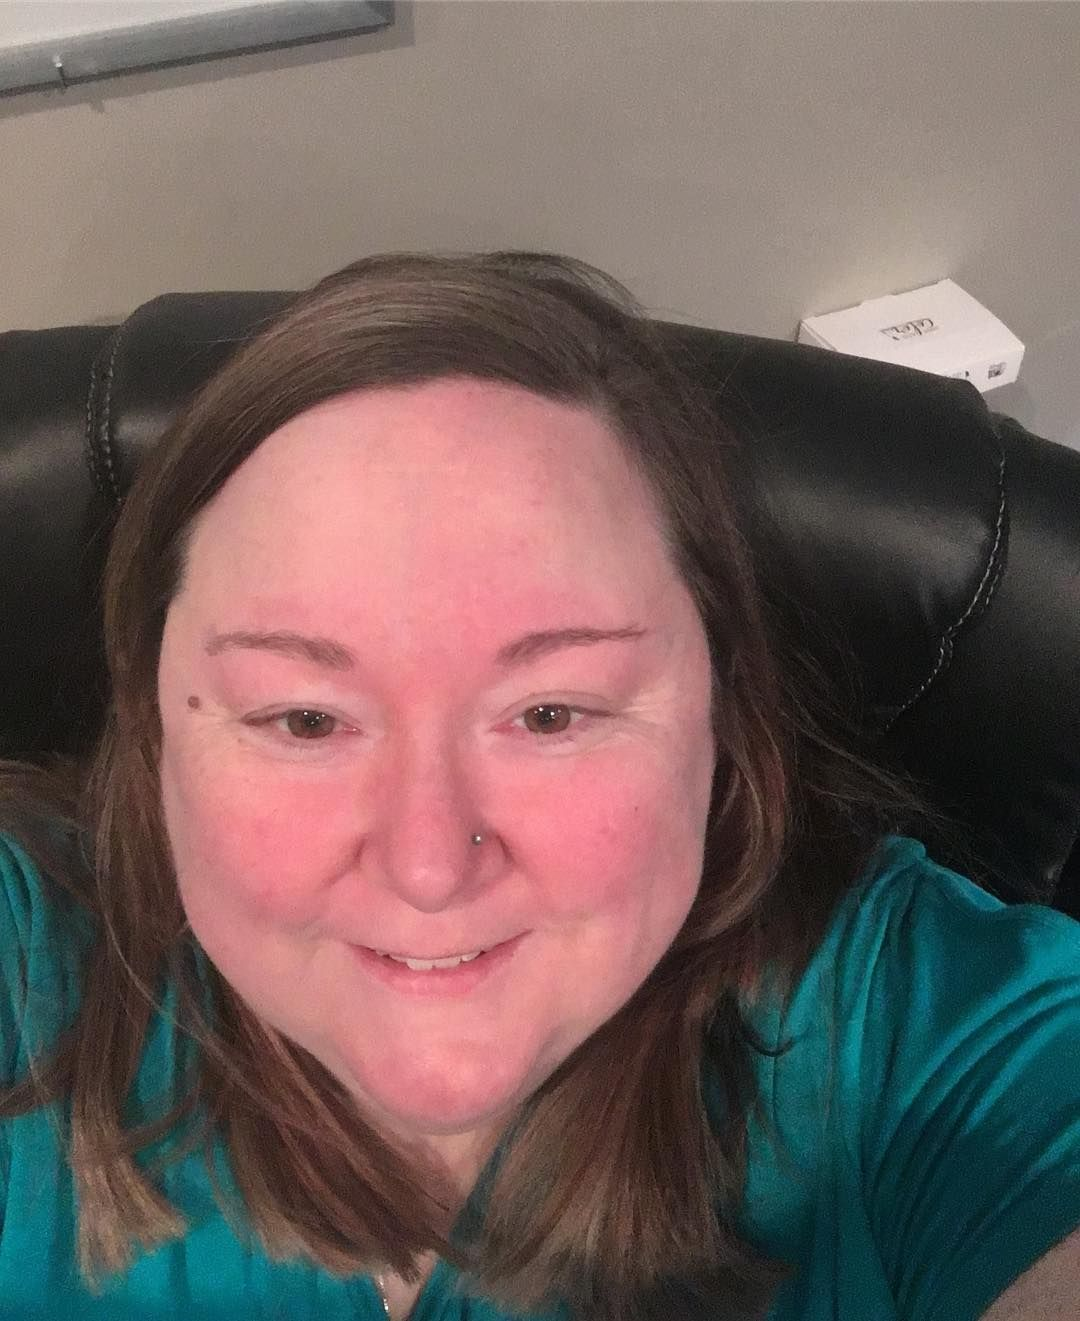 I love that clean feeling after just getting my hair cut!! #shamebuster #lifecoach #soulworker #intuitivehealer #intuitivecoach #psychotherapist